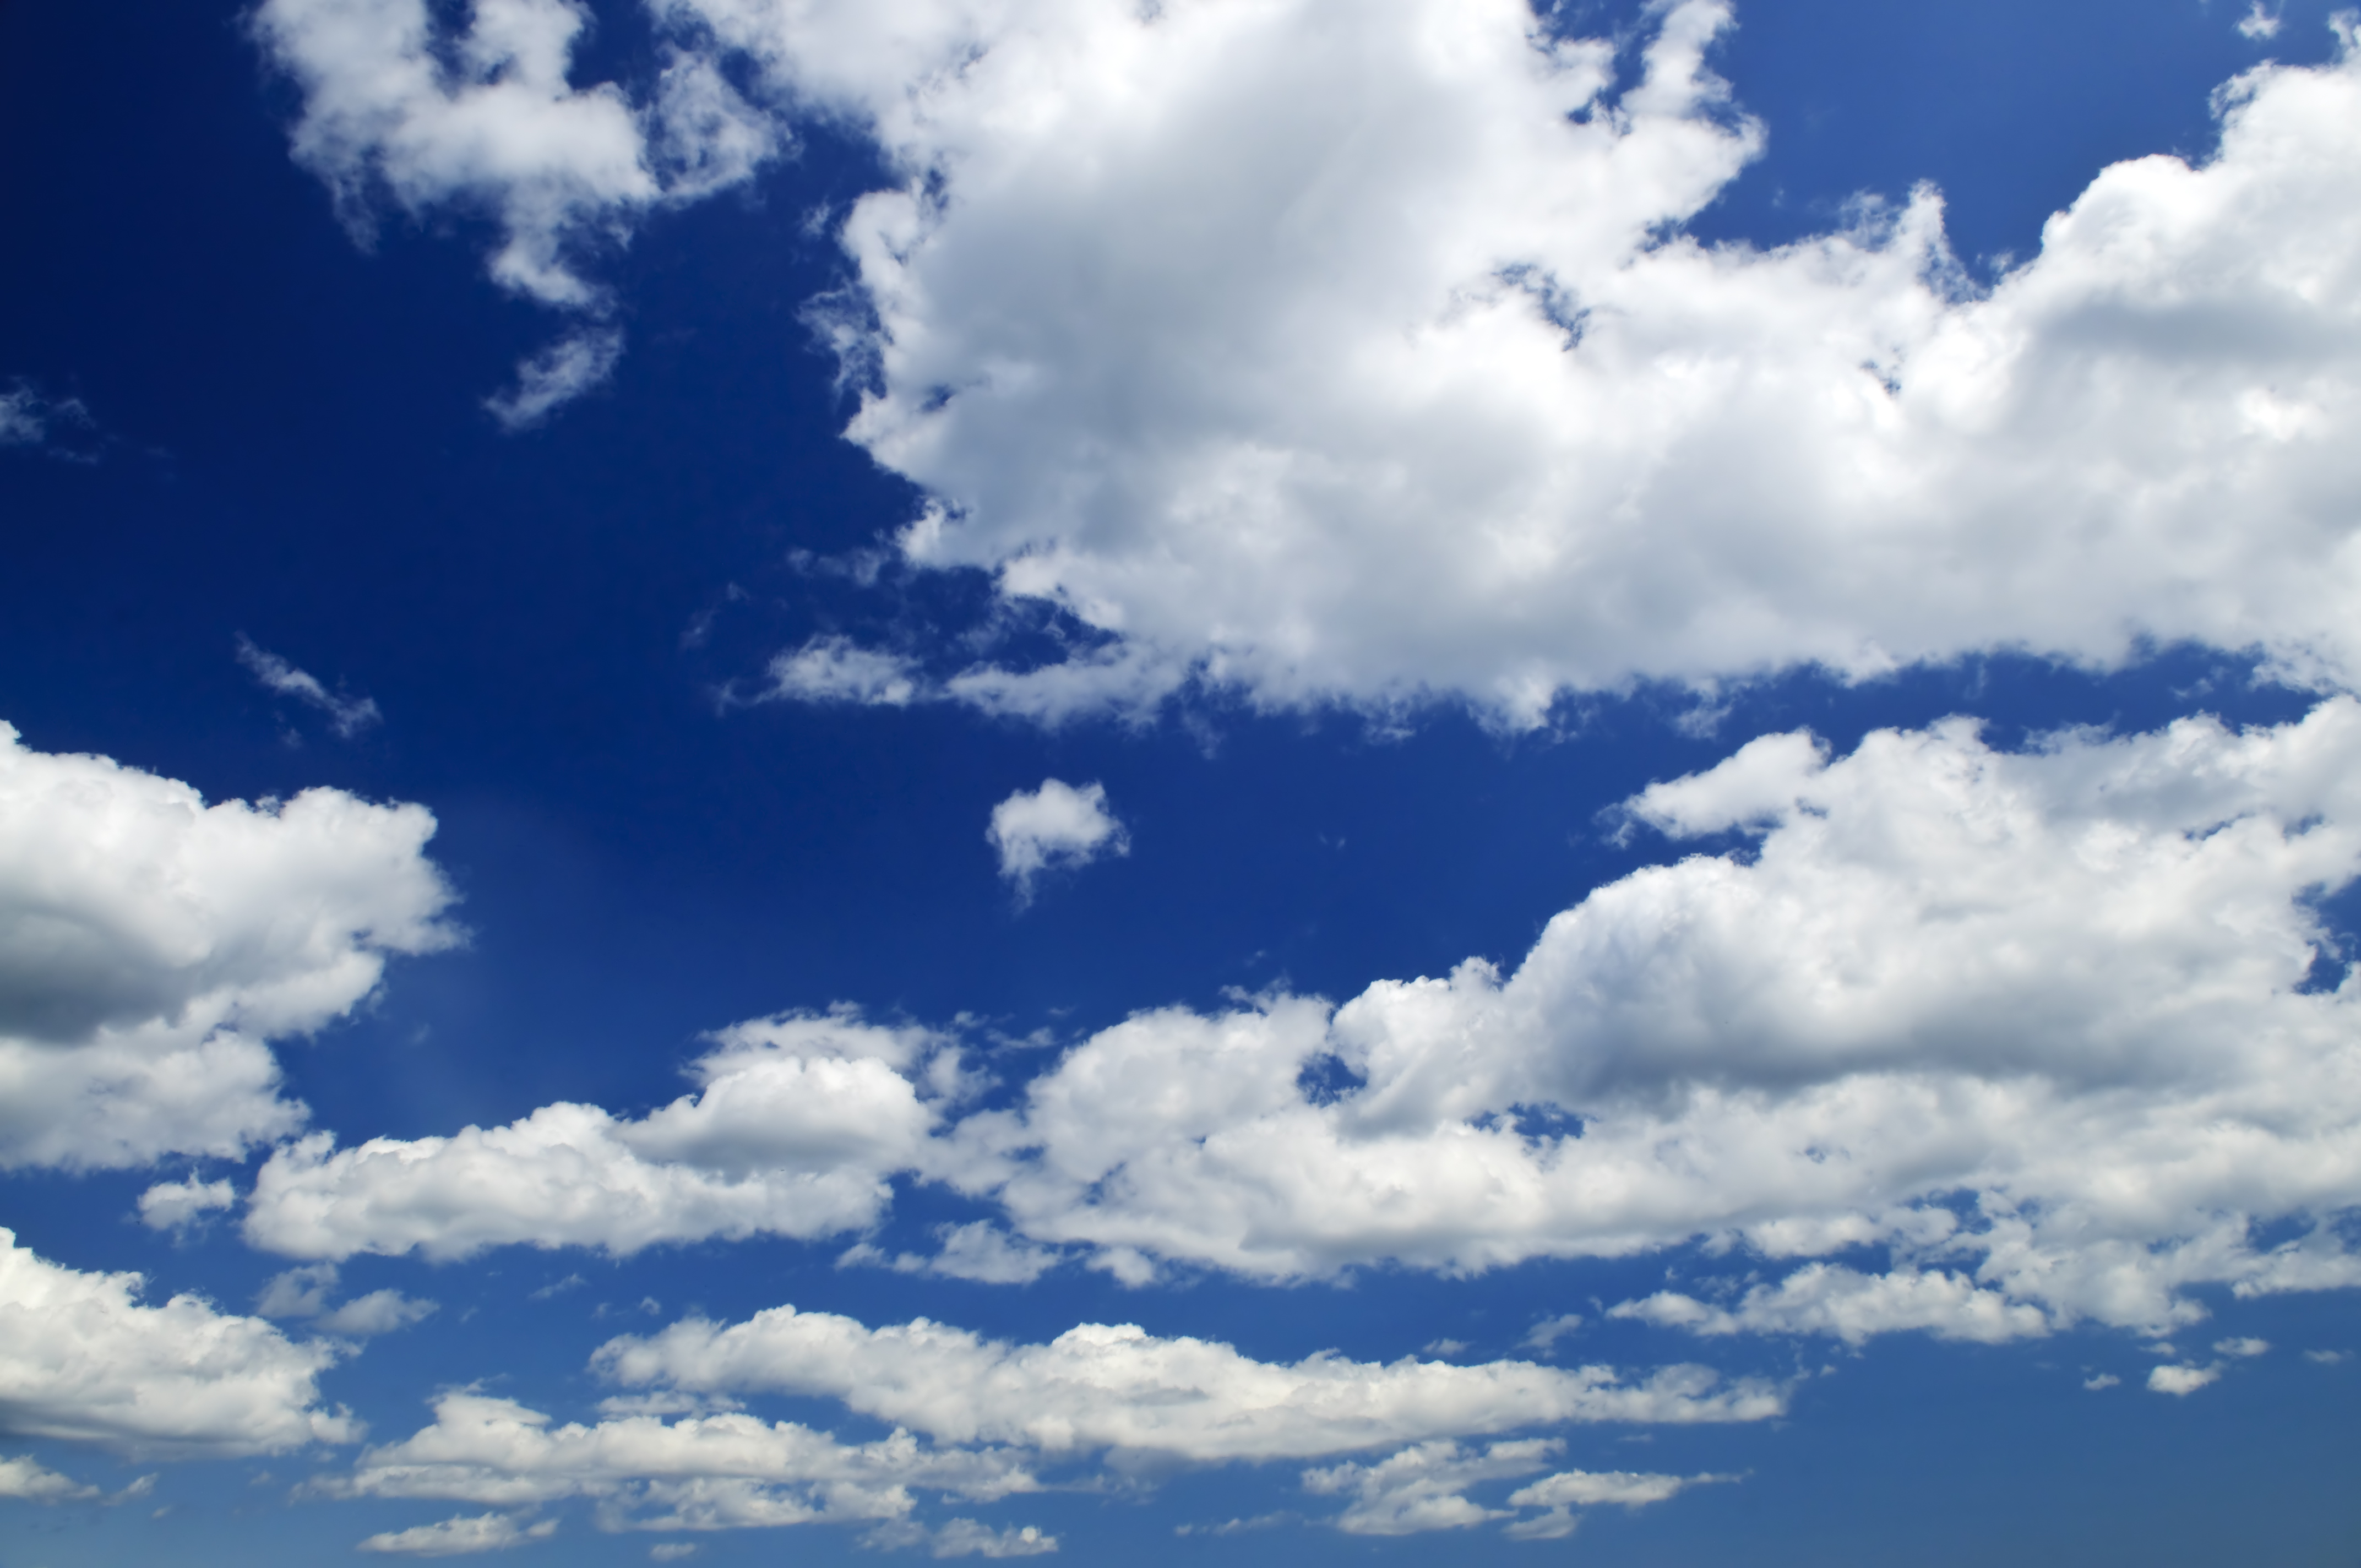 Blue Sky Clouds Wallpapers and Images 4288x2848